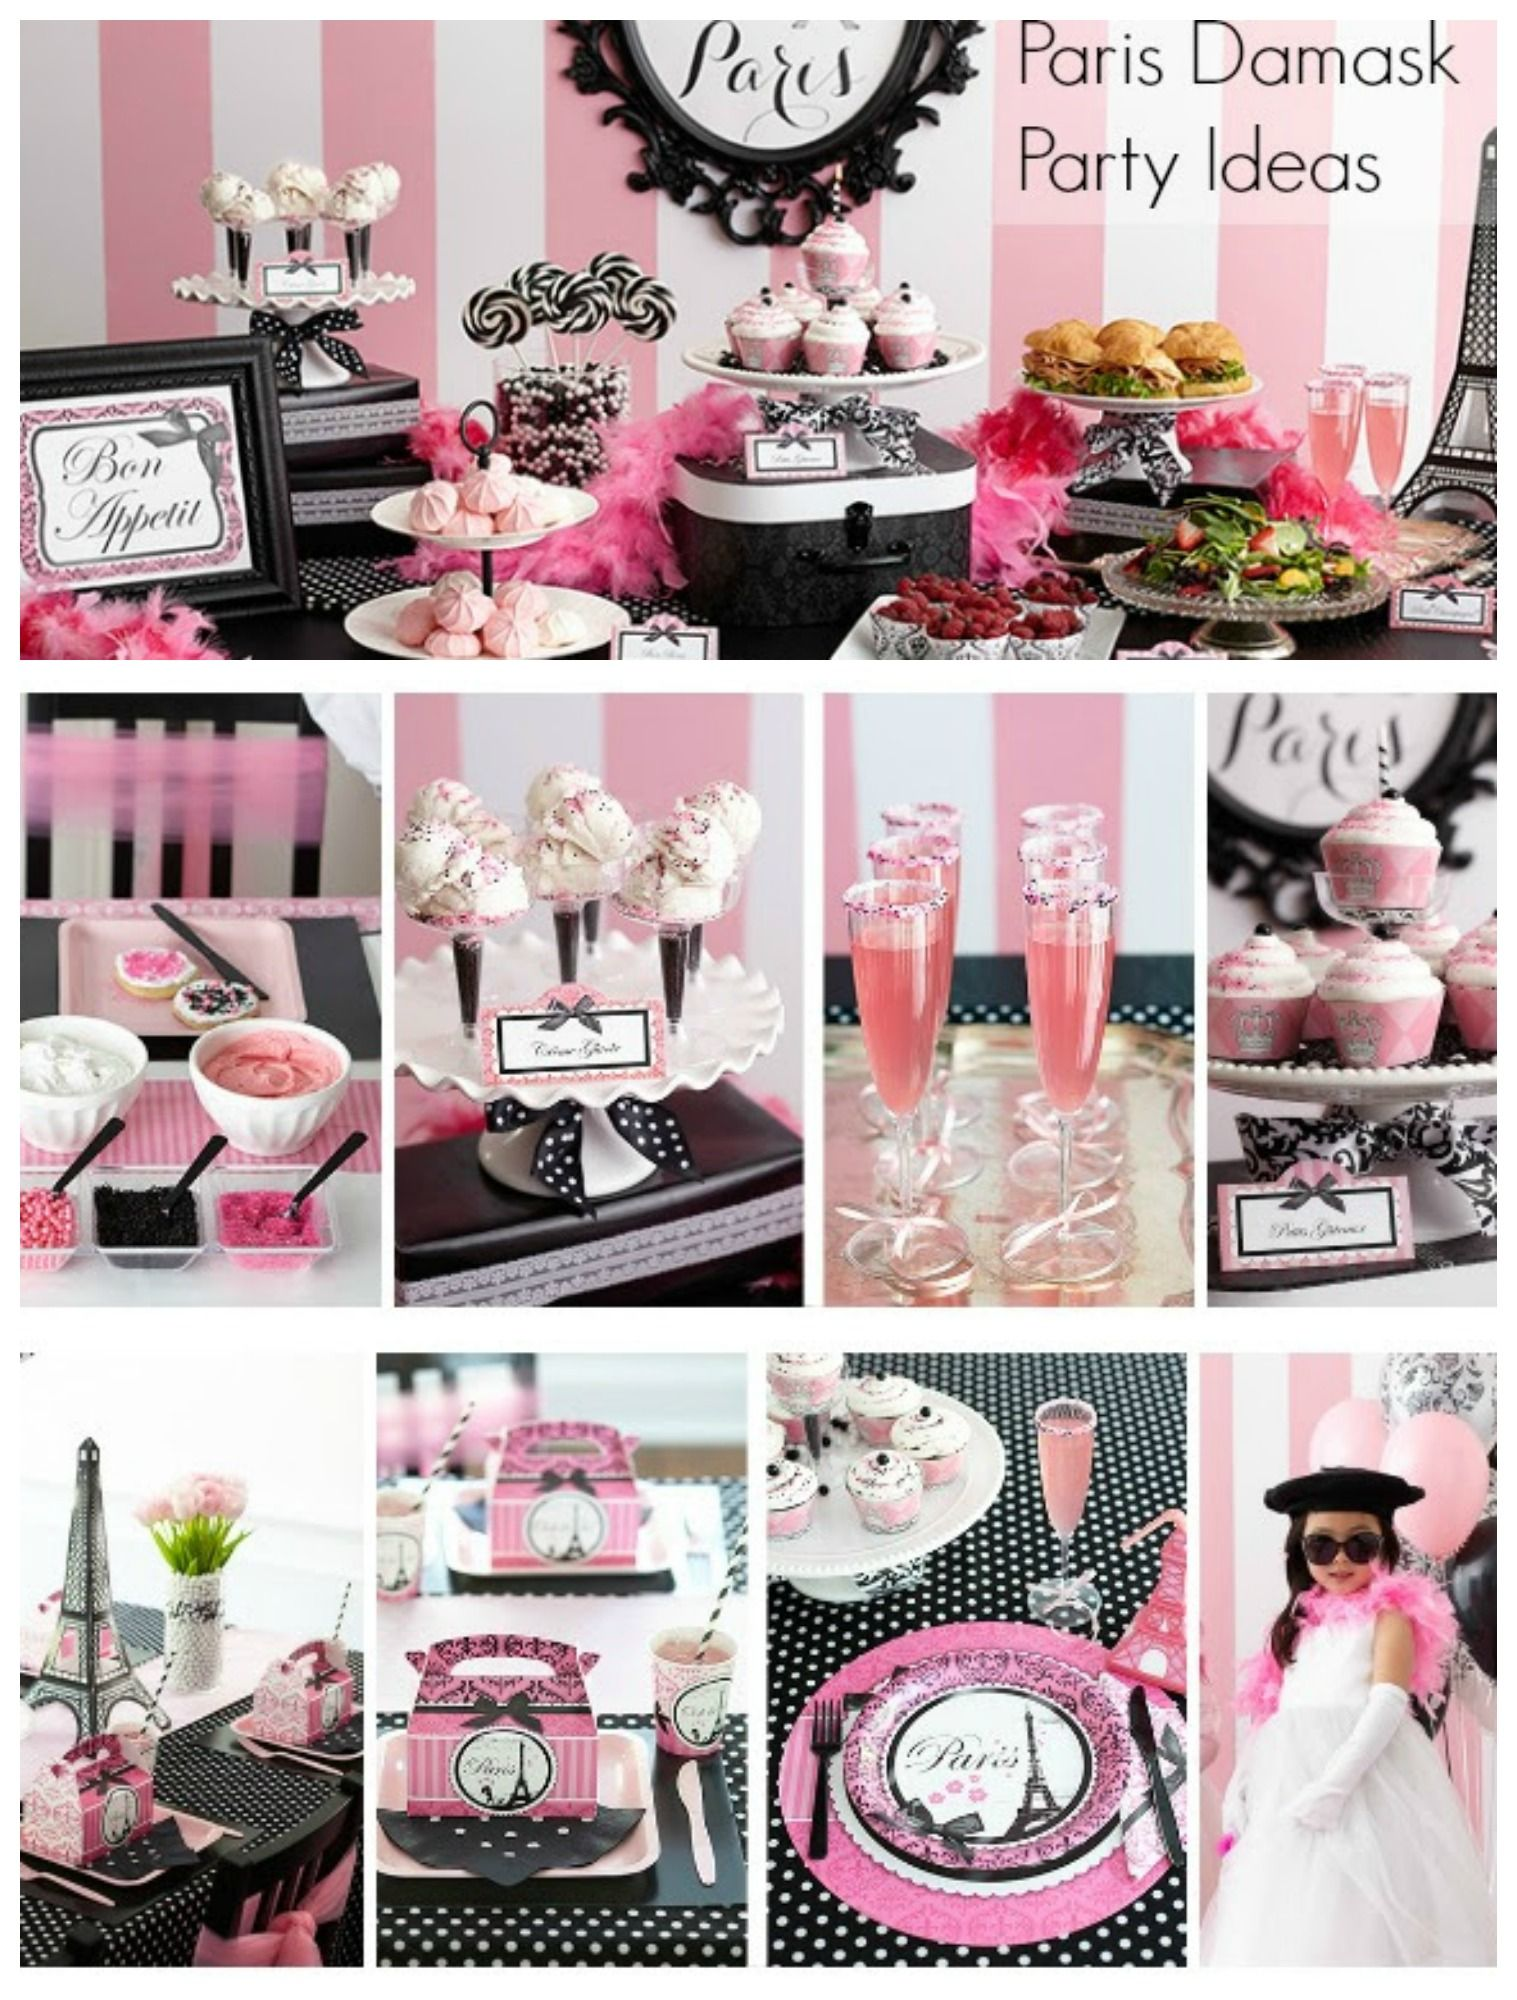 Pink And Black Paris Themed Birthday Party Ideas Parties365 Paris Birthday Parties Paris Themed Birthday Party Paris Theme Party